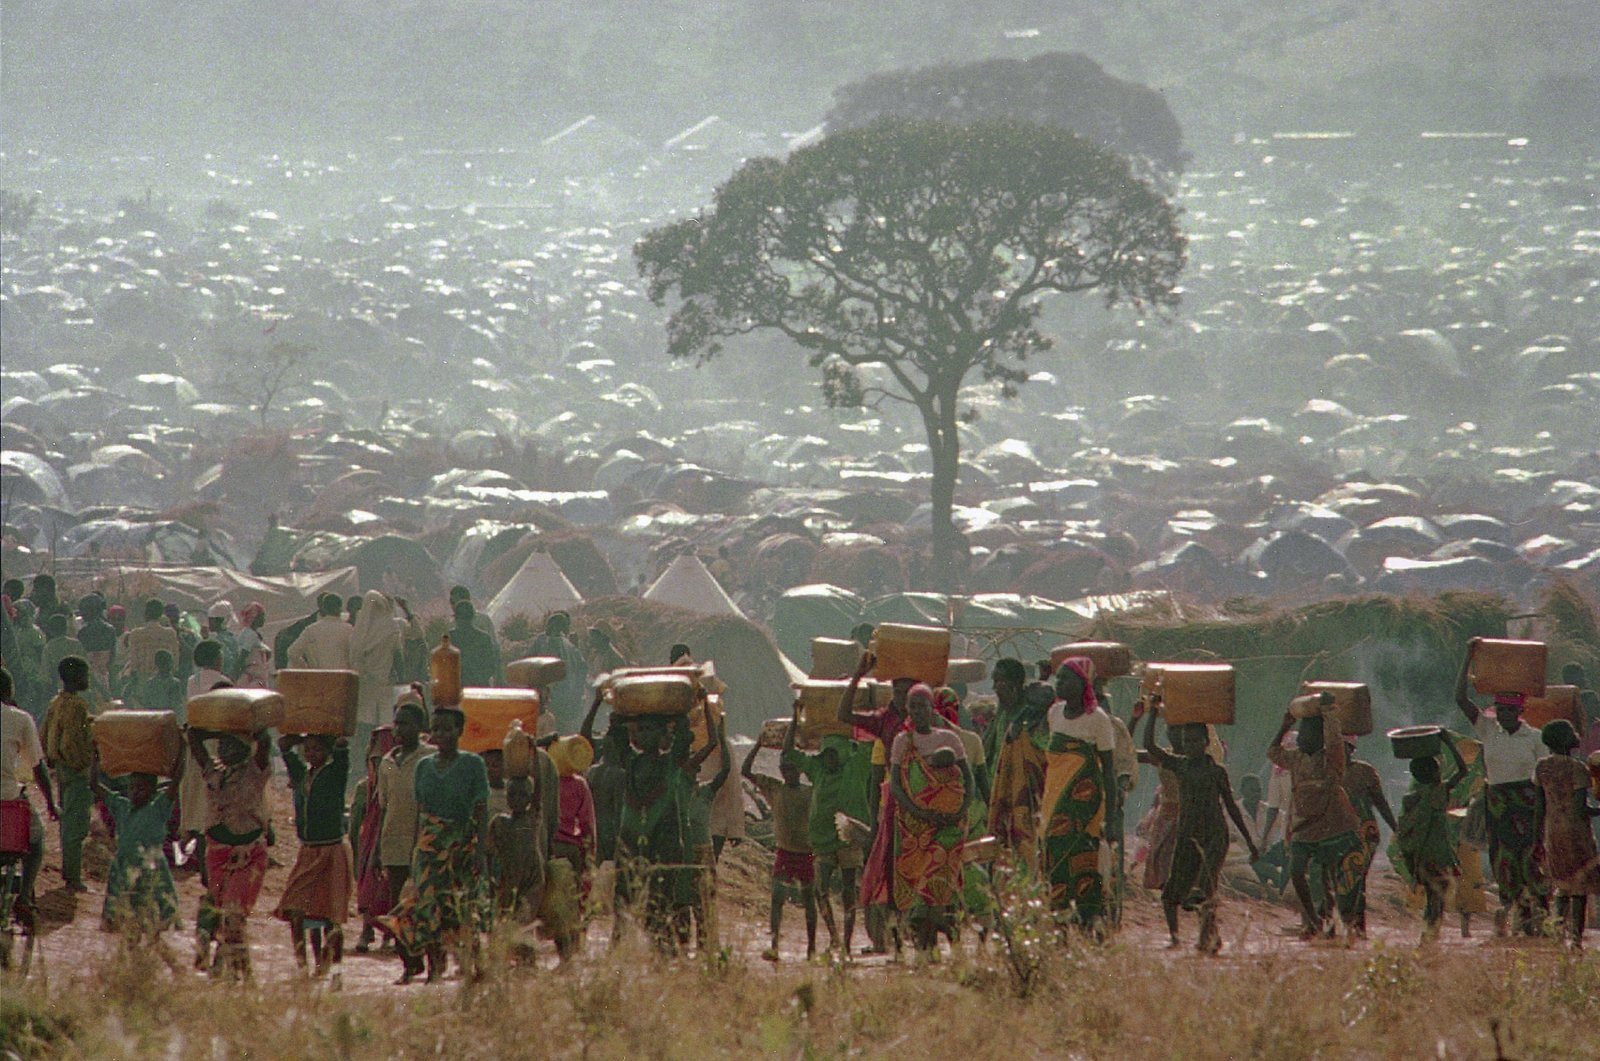 Refugees who fled the ethnic bloodbath in neighboring Rwanda carry water containers back to their huts at the Benaco refugee camp in Tanzania, near the border with Rwanda, May 17, 1994. (AP Photo)